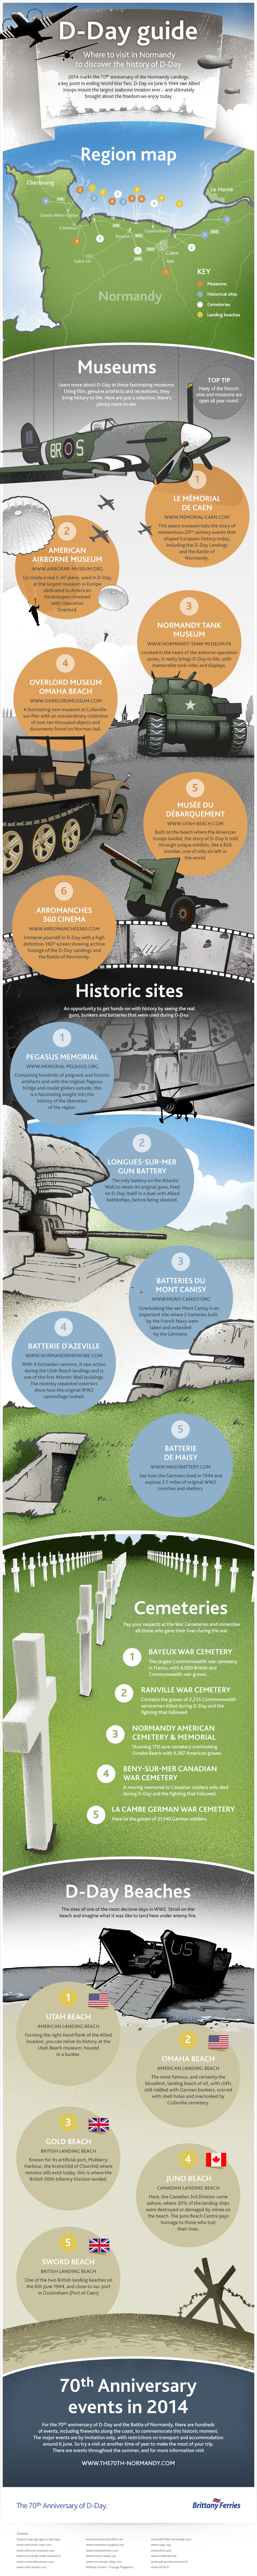 Where to Visit in Normandy to Discover the History of D-Day